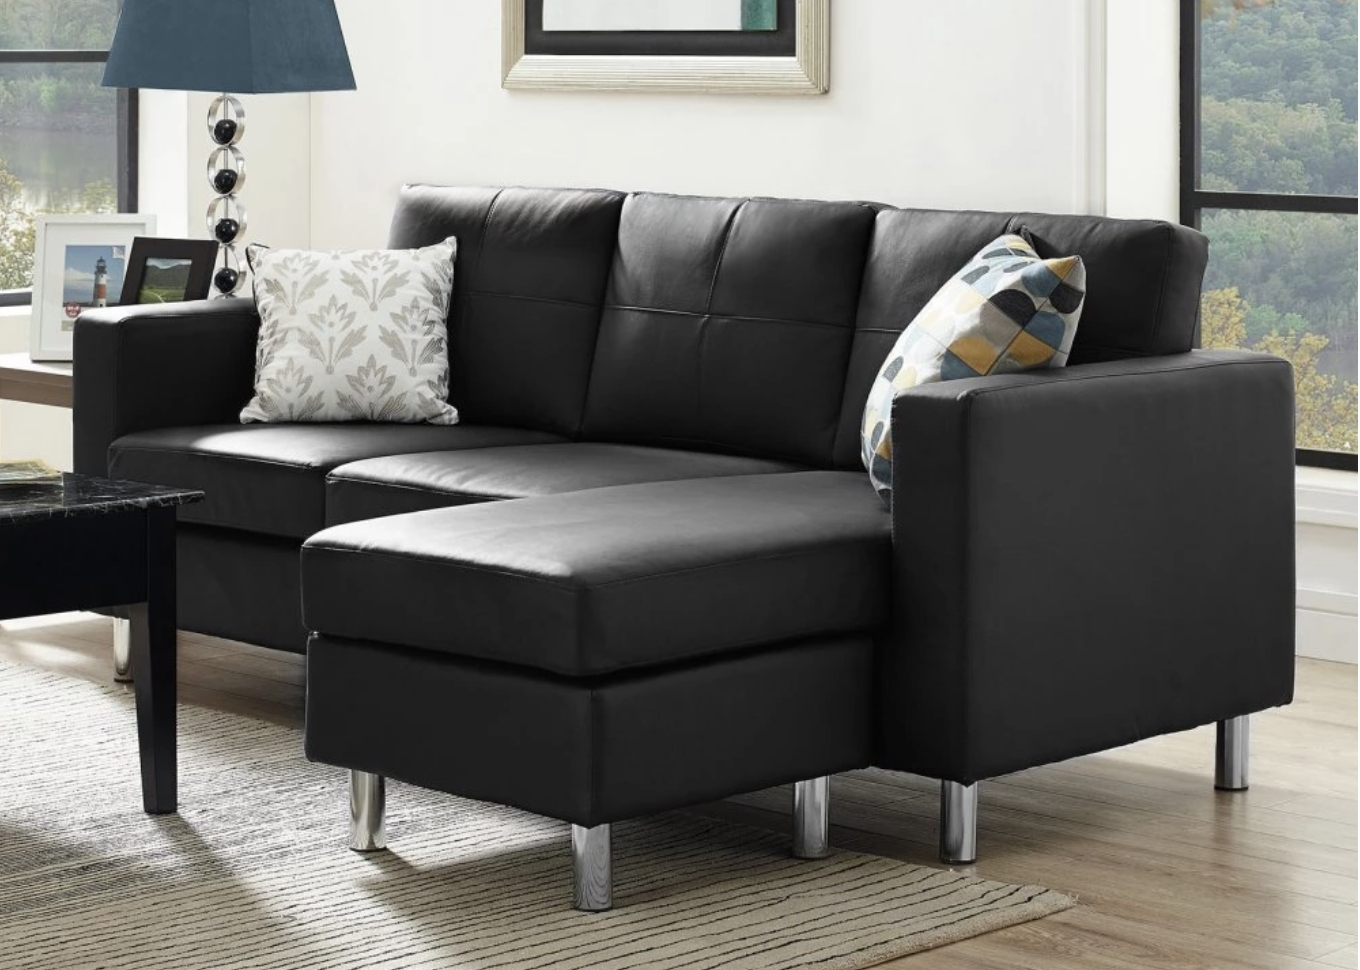 110x90 Sectional Sofas Within Most Recently Released 75 Modern Sectional Sofas For Small Spaces (2018) (View 11 of 20)